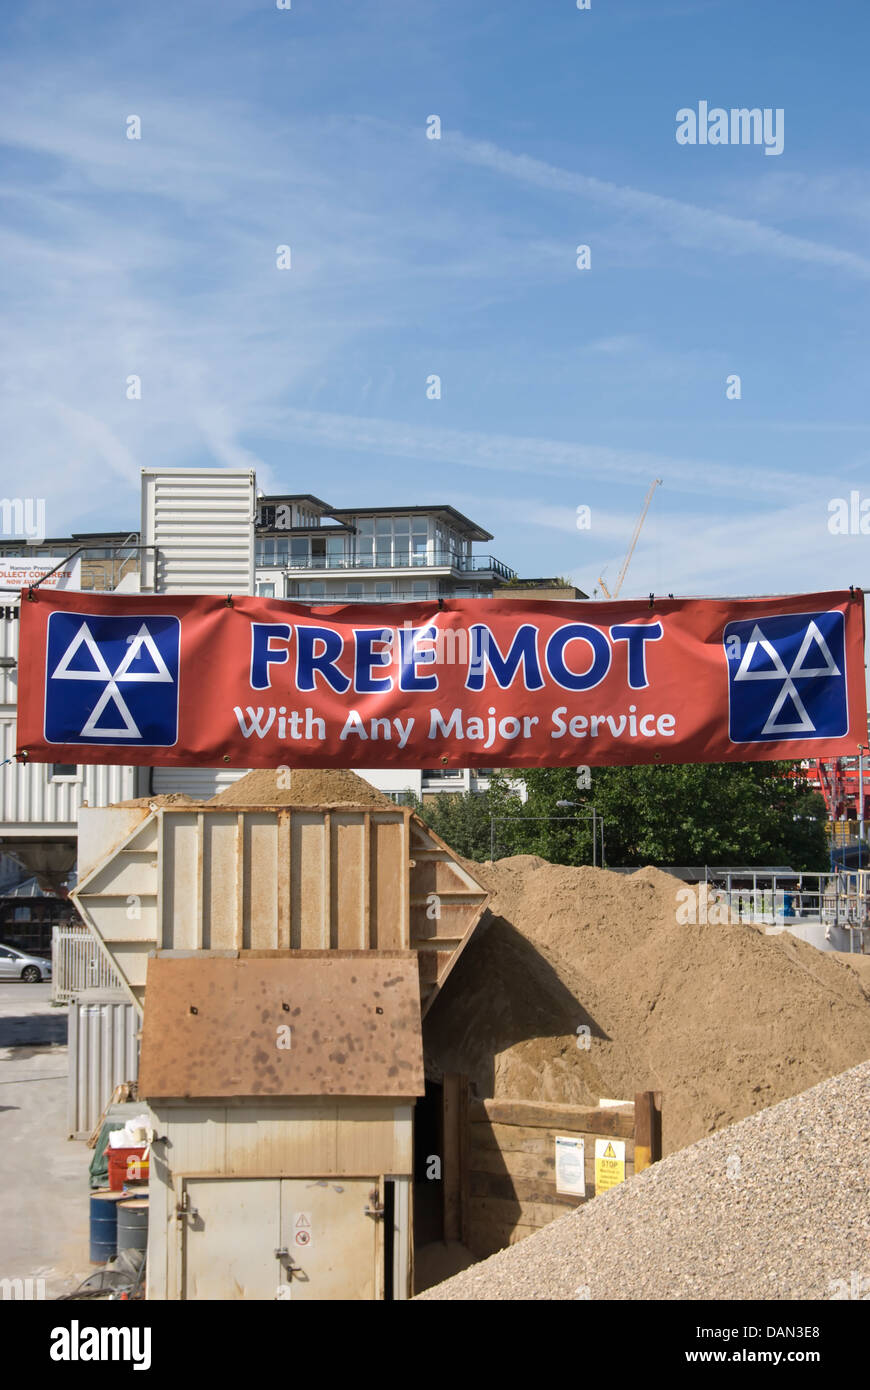 banner advertising a free mot with any major service, wandsworth, southwest london, england - Stock Image